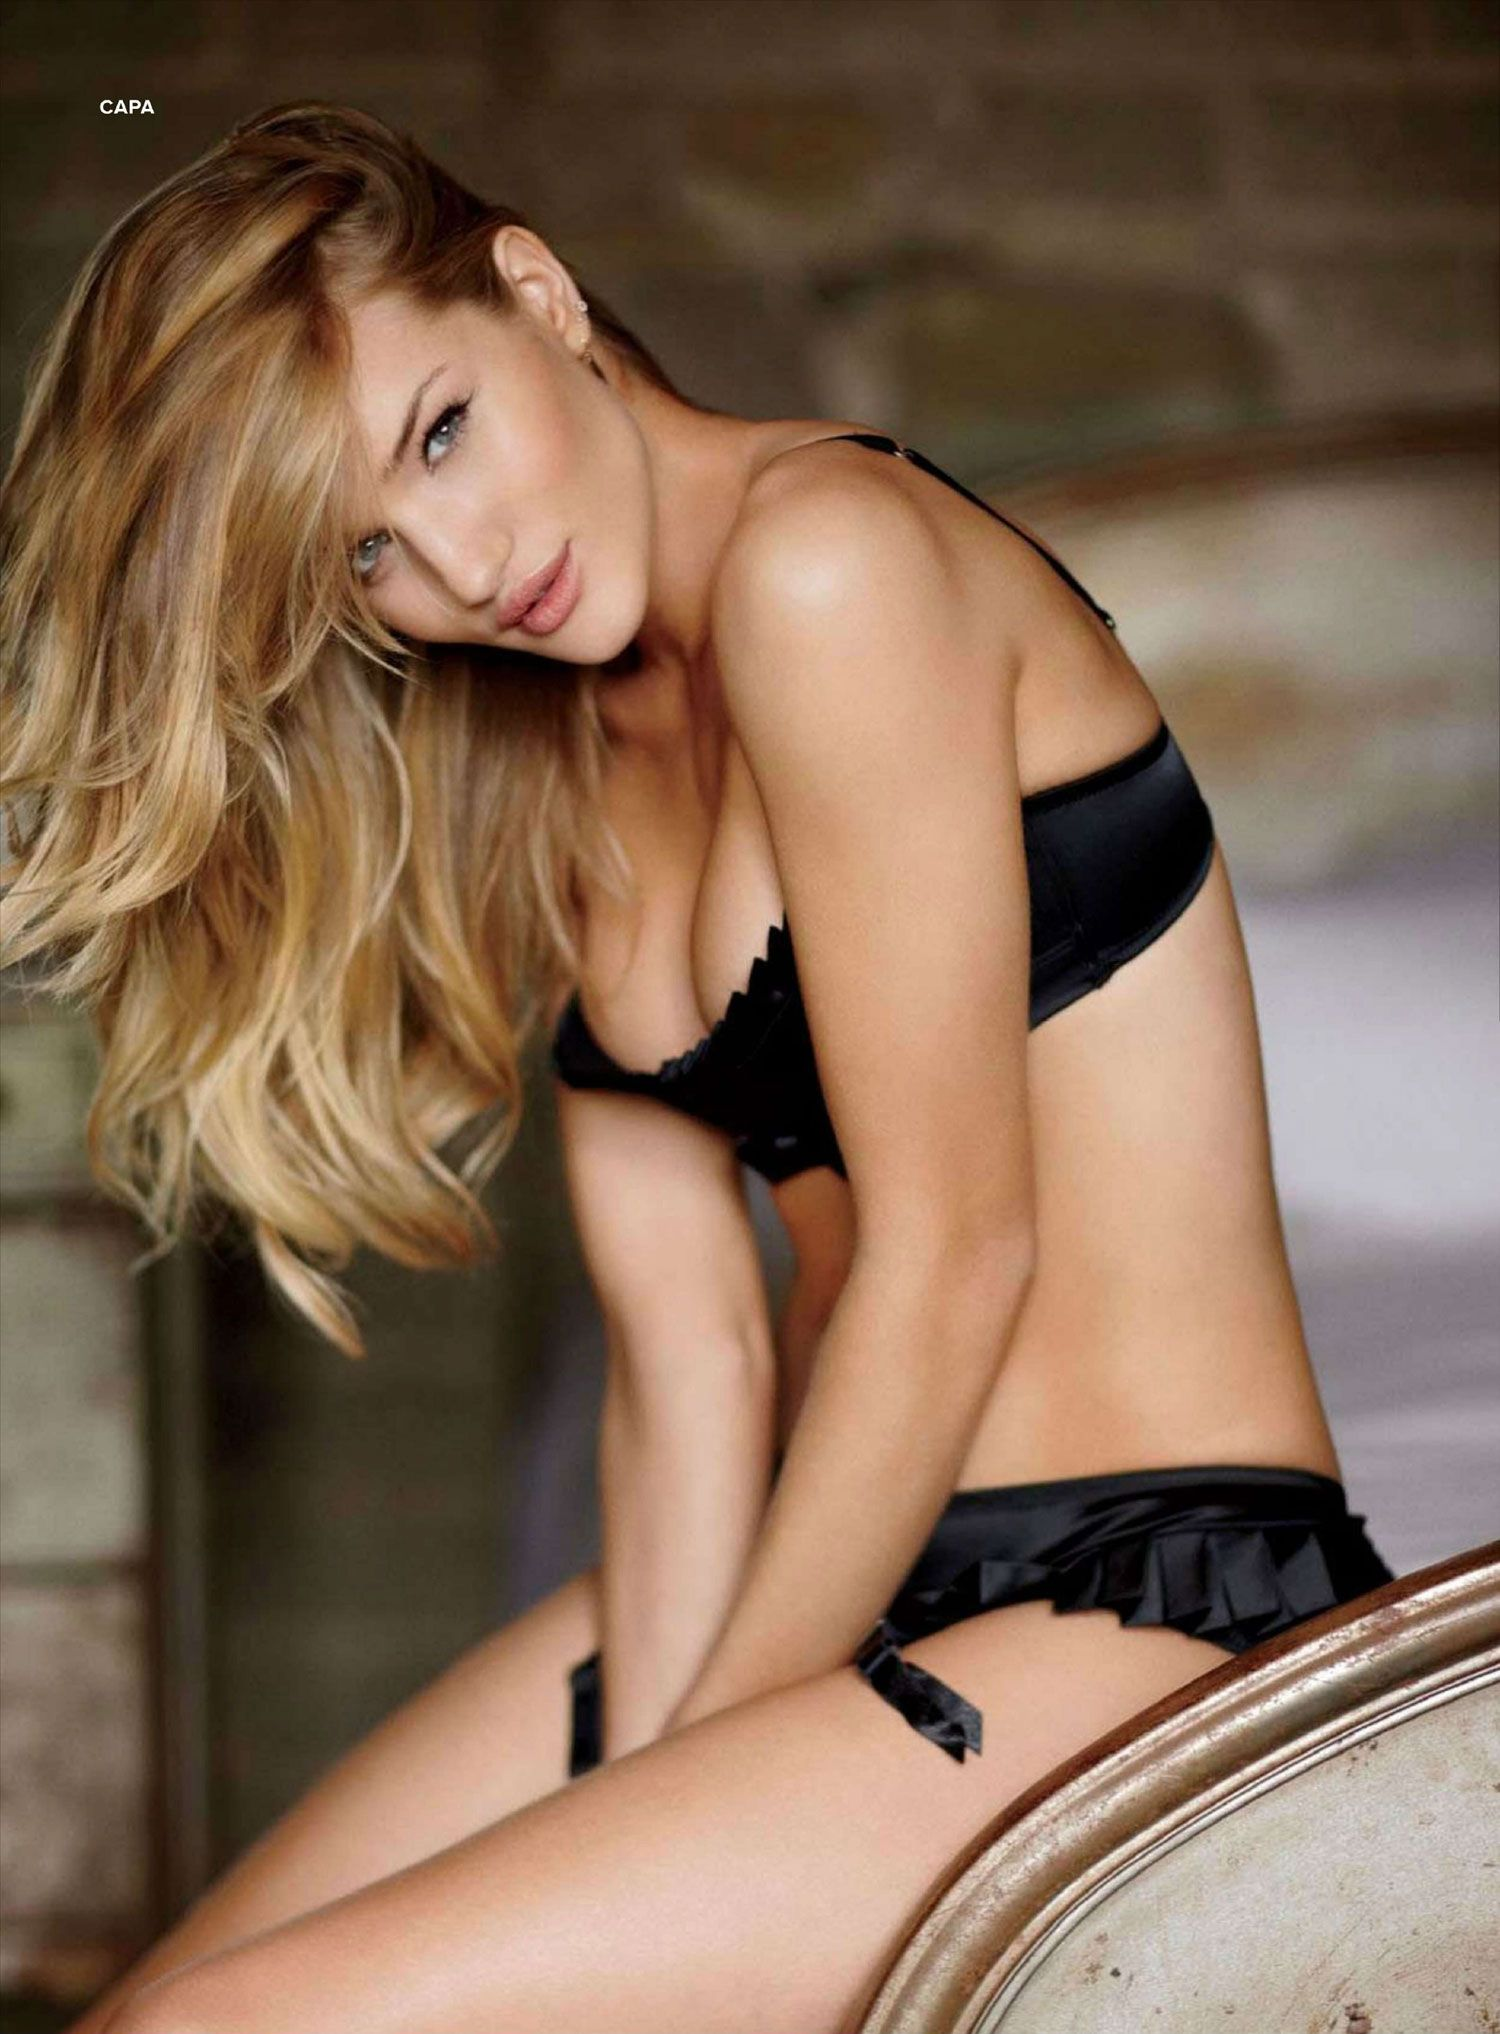 Rosie huntington whiteley hot in maxim wallpaper full hd rosie huntington whiteley hot in maxim wallpaper full hd wallpaperzone voltagebd Image collections